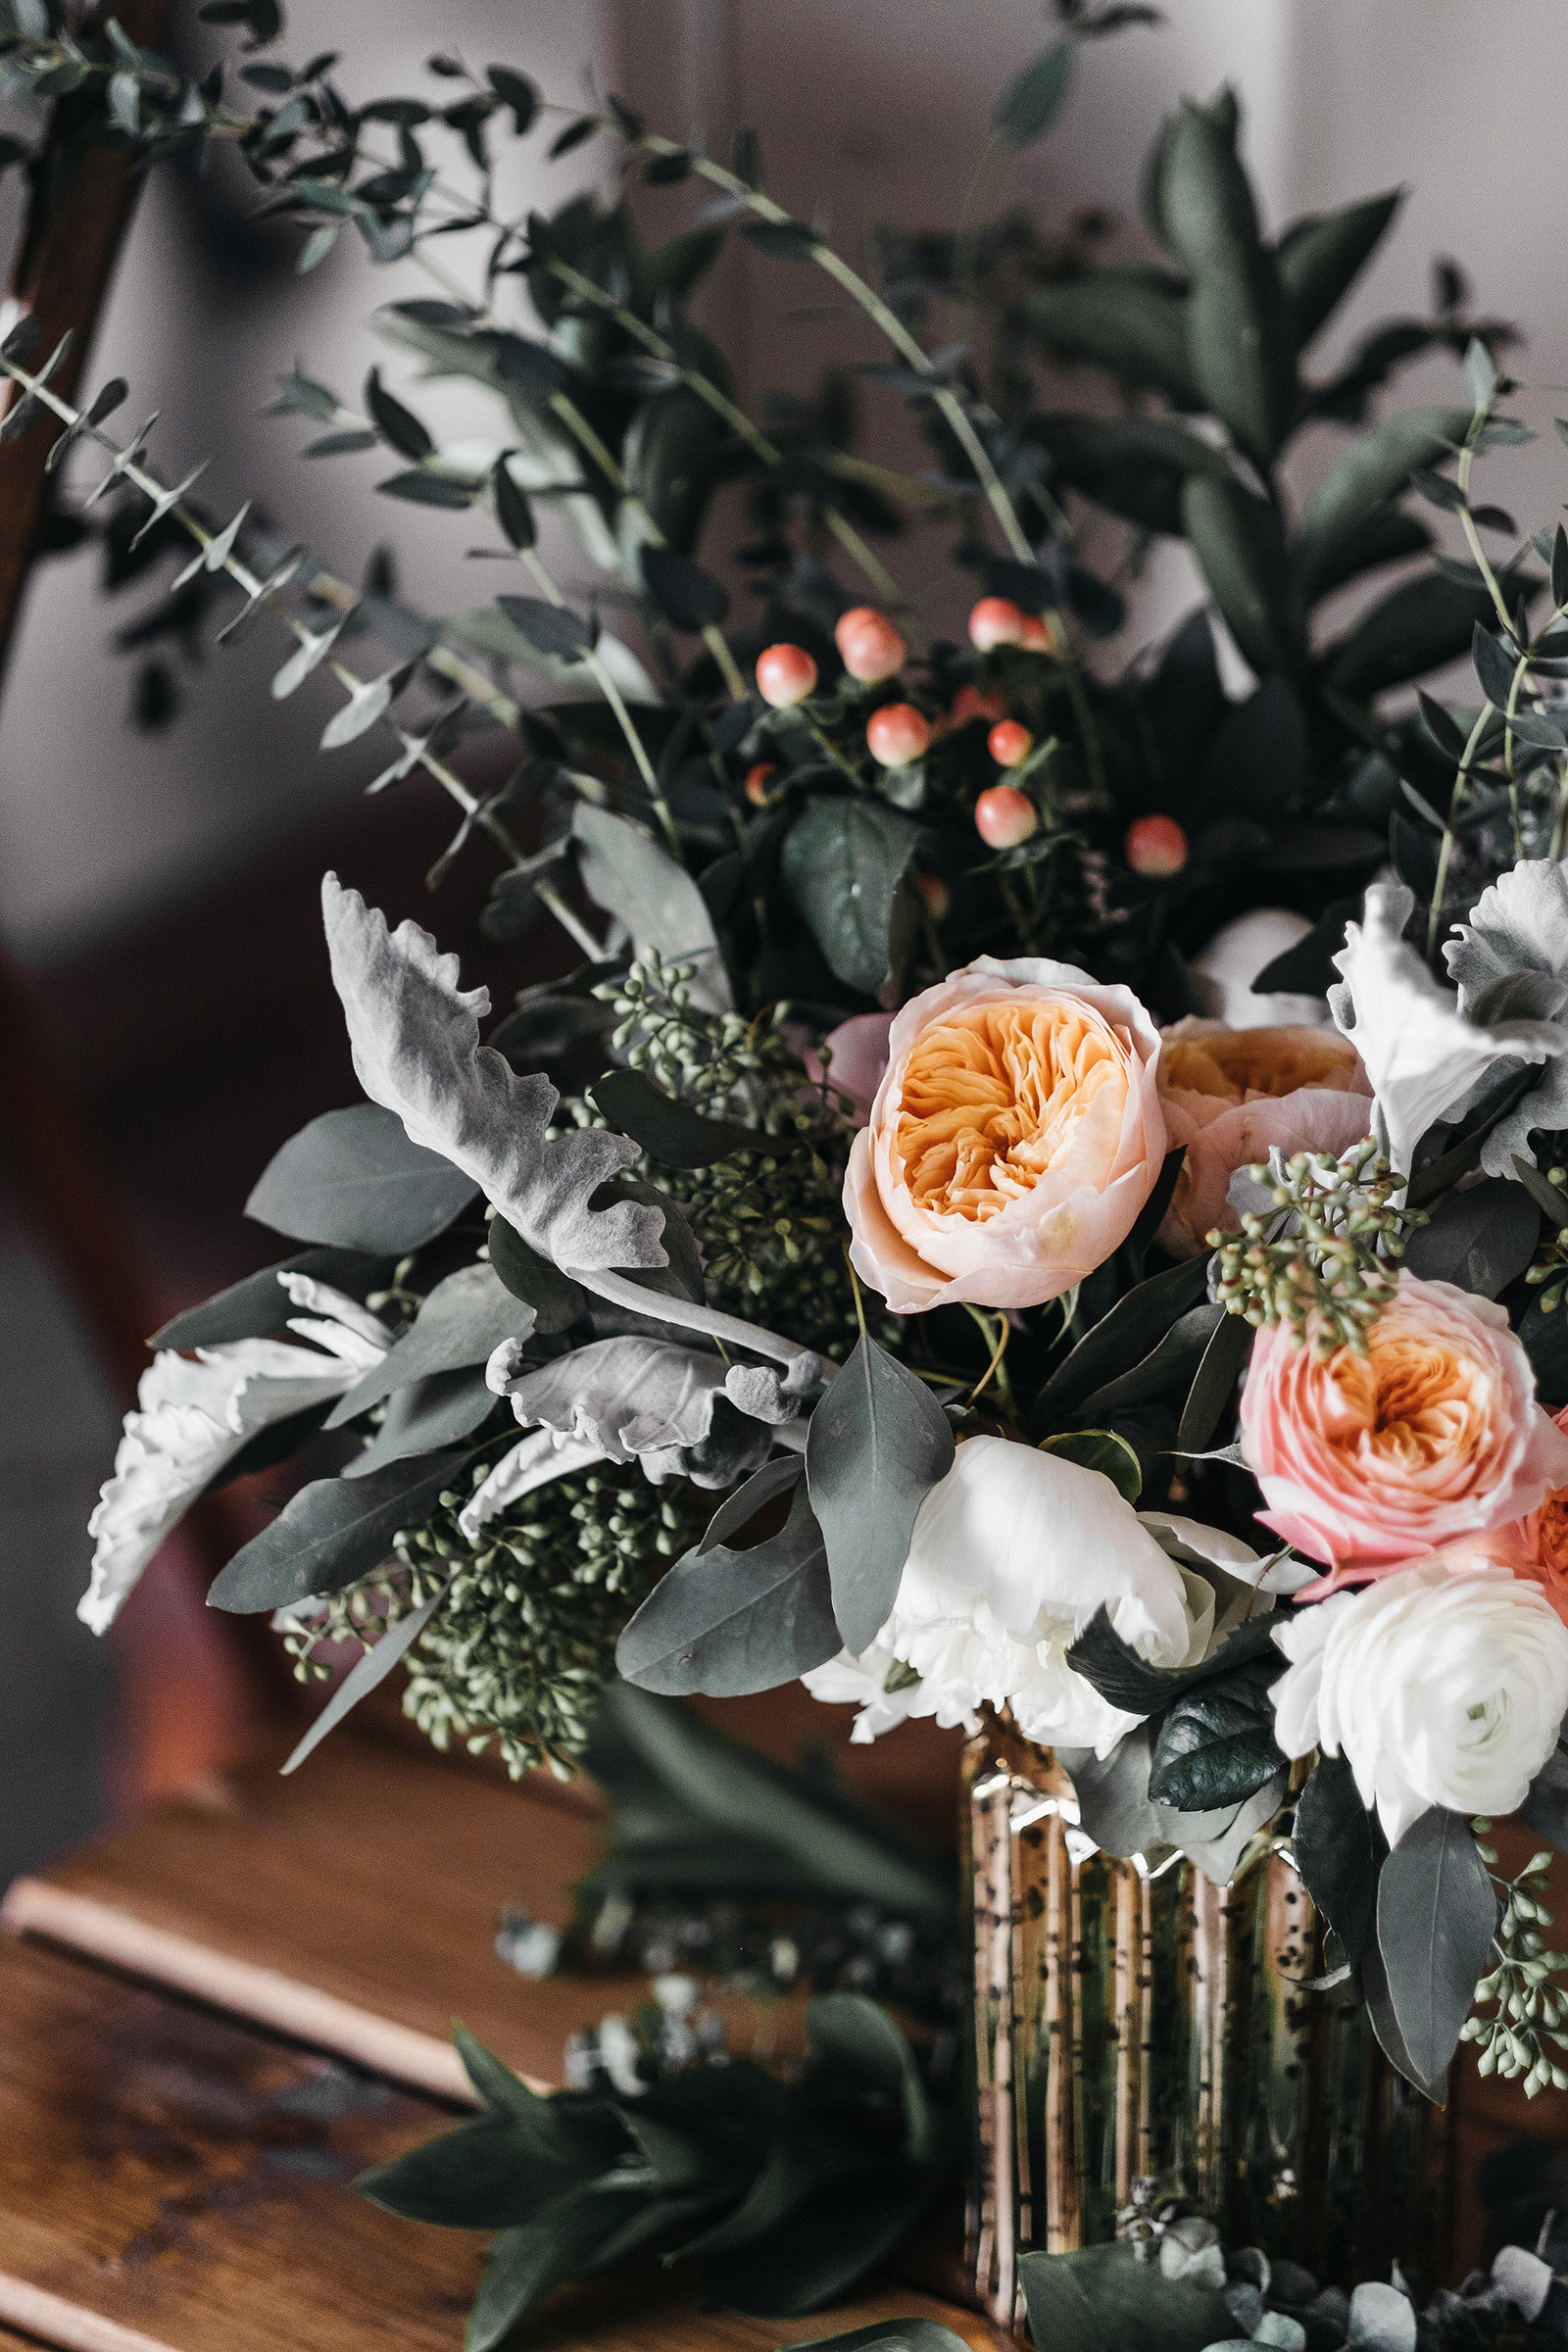 athena-and-camron-seattle-wedding-photographer-dairyland-snohomish-rustic-barn-wedding-flowers-styling-inspiration-lauren-madison-3